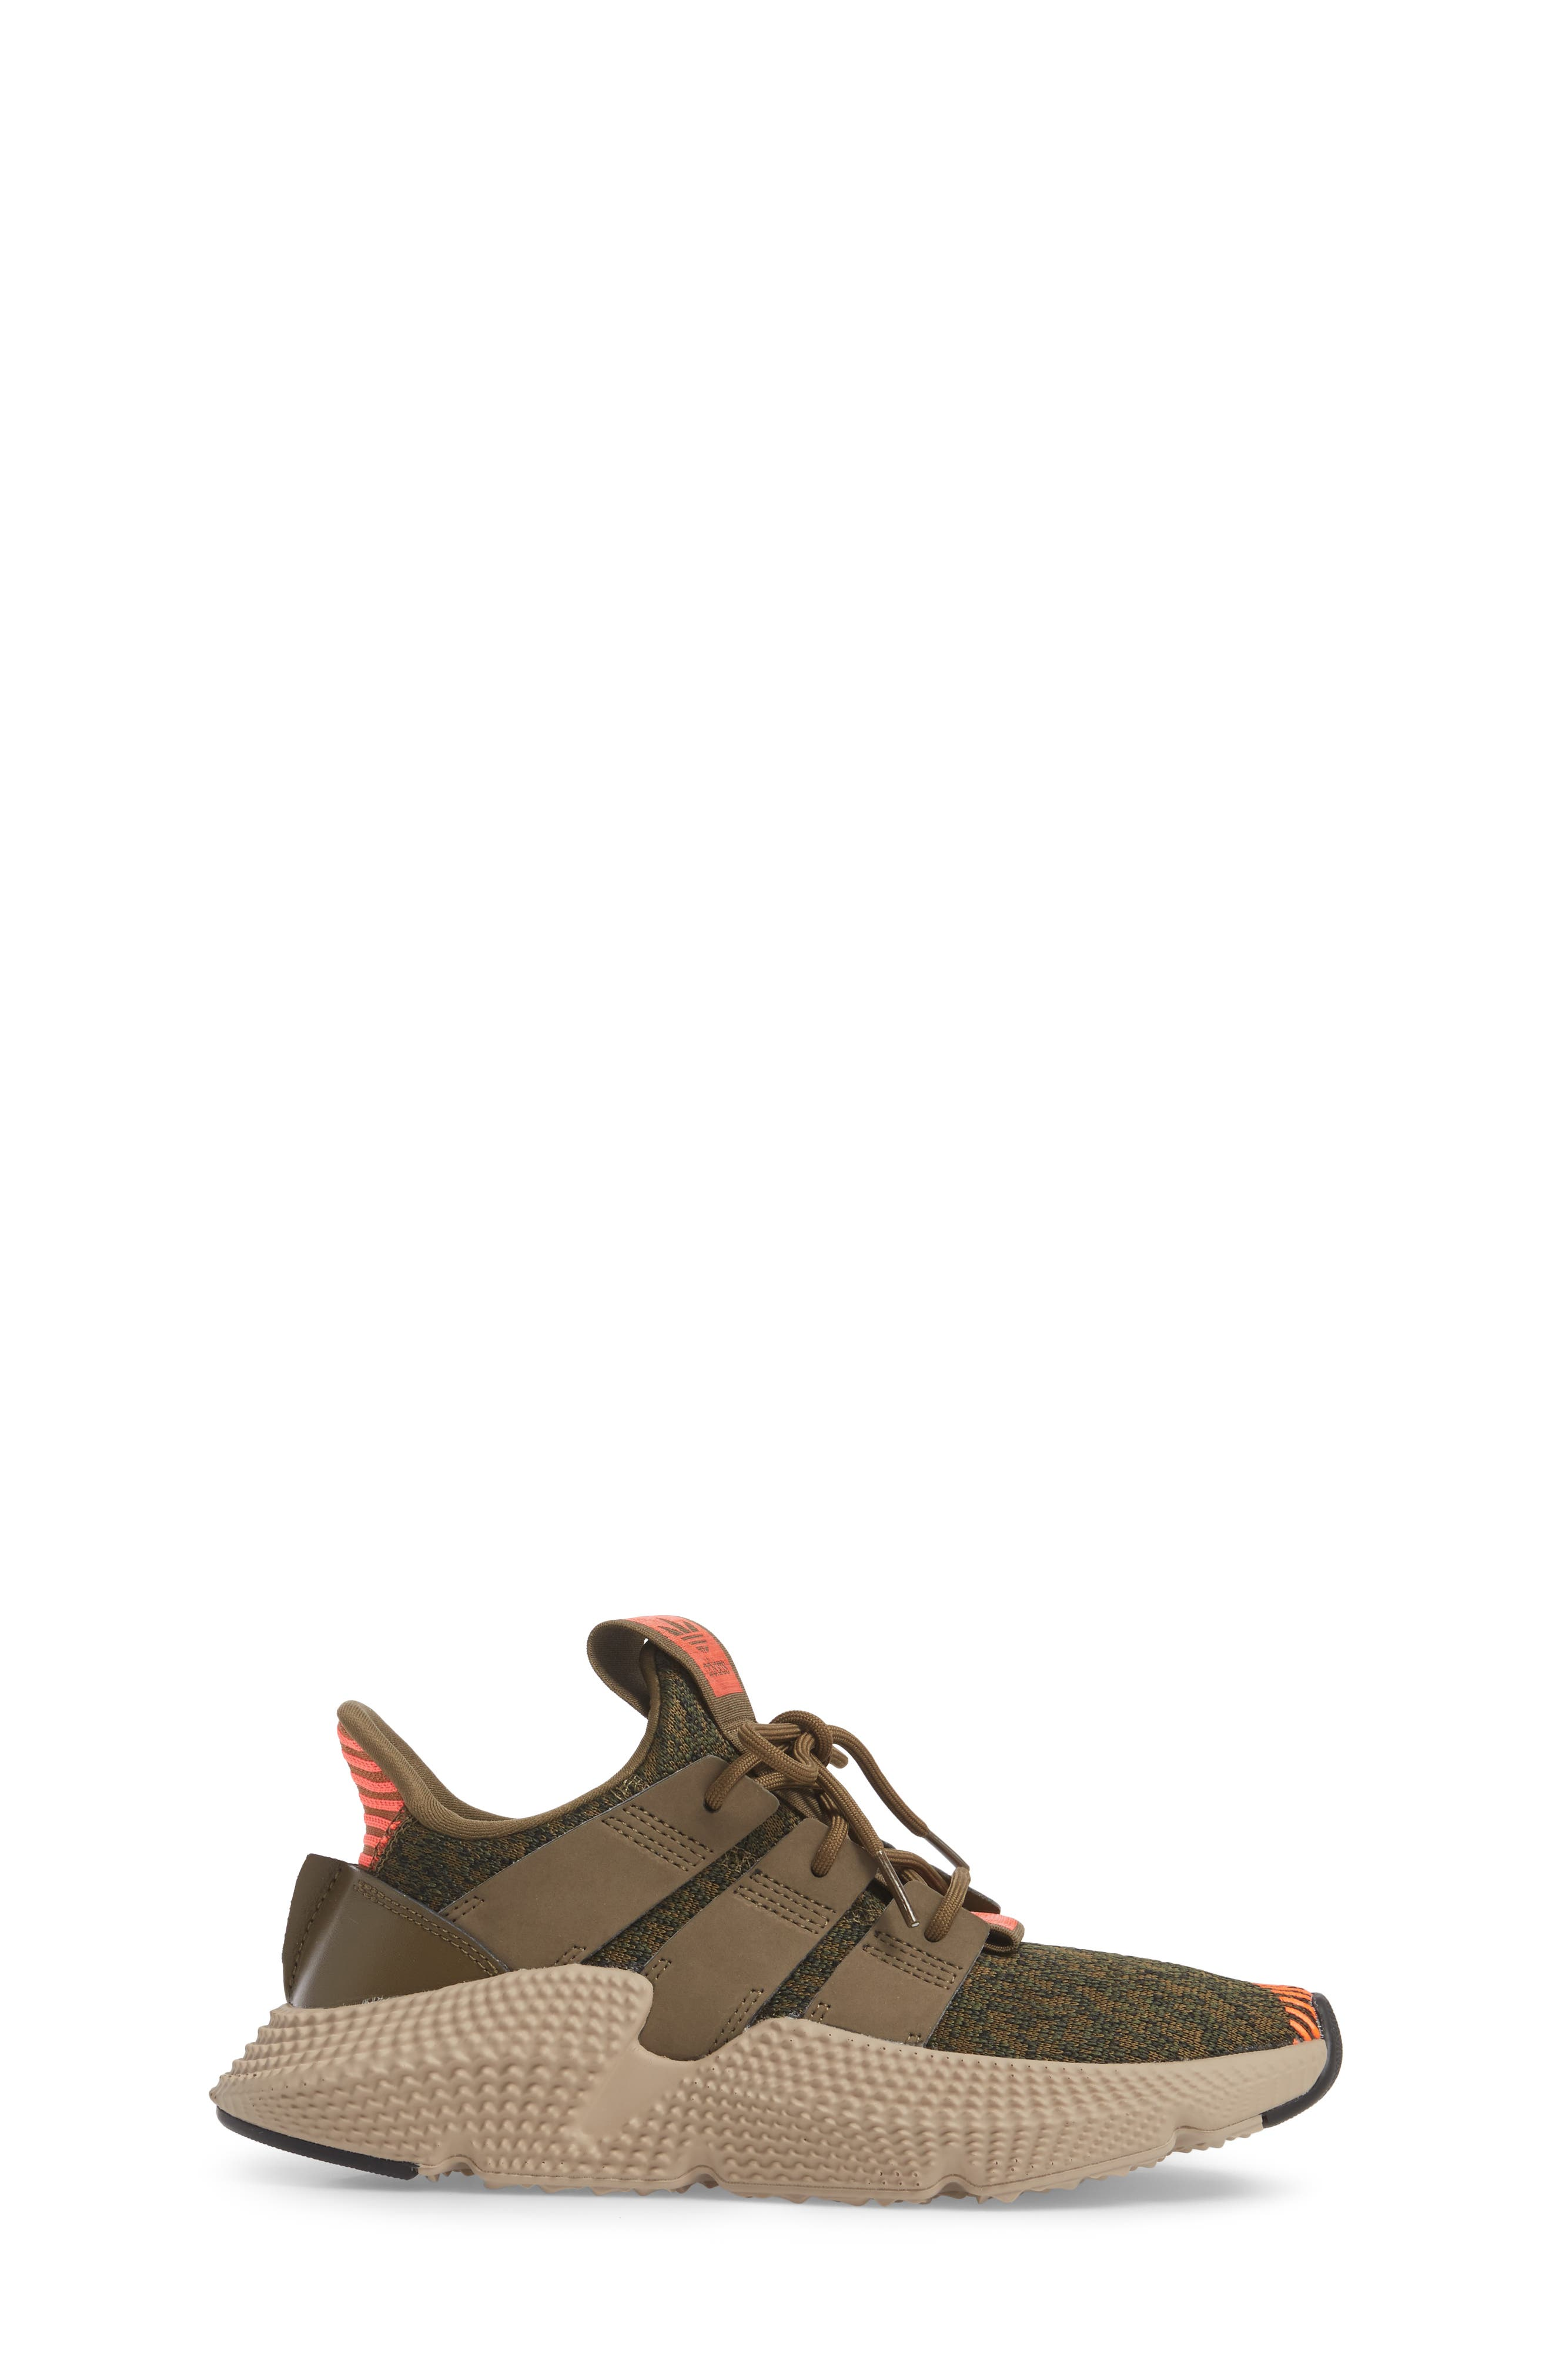 Prophere Sneaker,                             Alternate thumbnail 3, color,                             Trace Olive / Trace Khaki